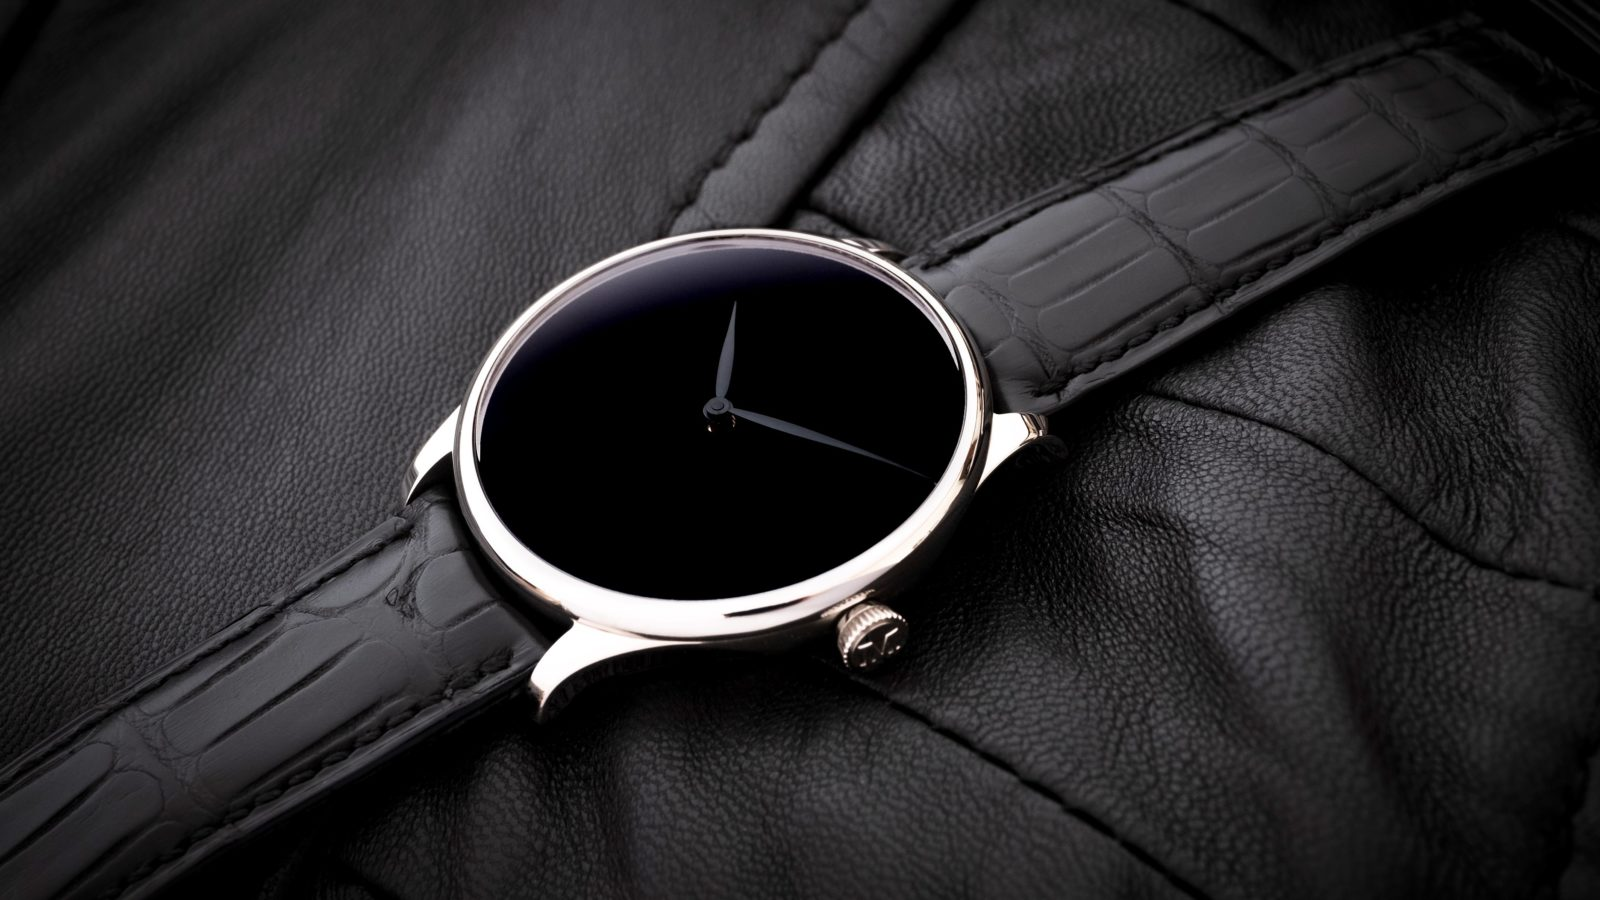 Trend Watching: Black watches that will never go out of style